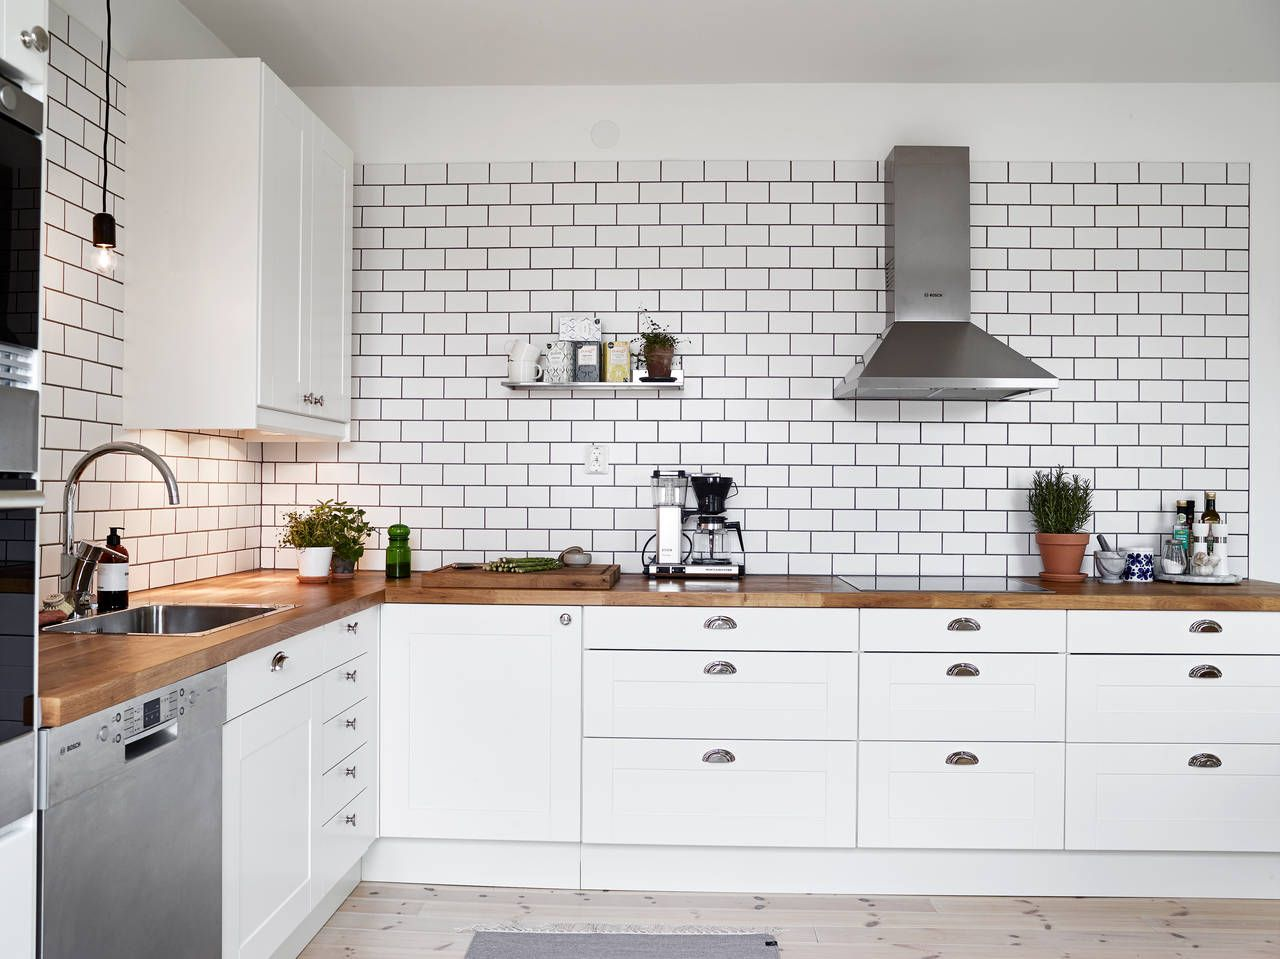 A White Tiles Black Grout Kind Of Kitchen Coco Lapine Design Kitchen Tiles Design White Kitchen Backsplash White Kitchen Tiles